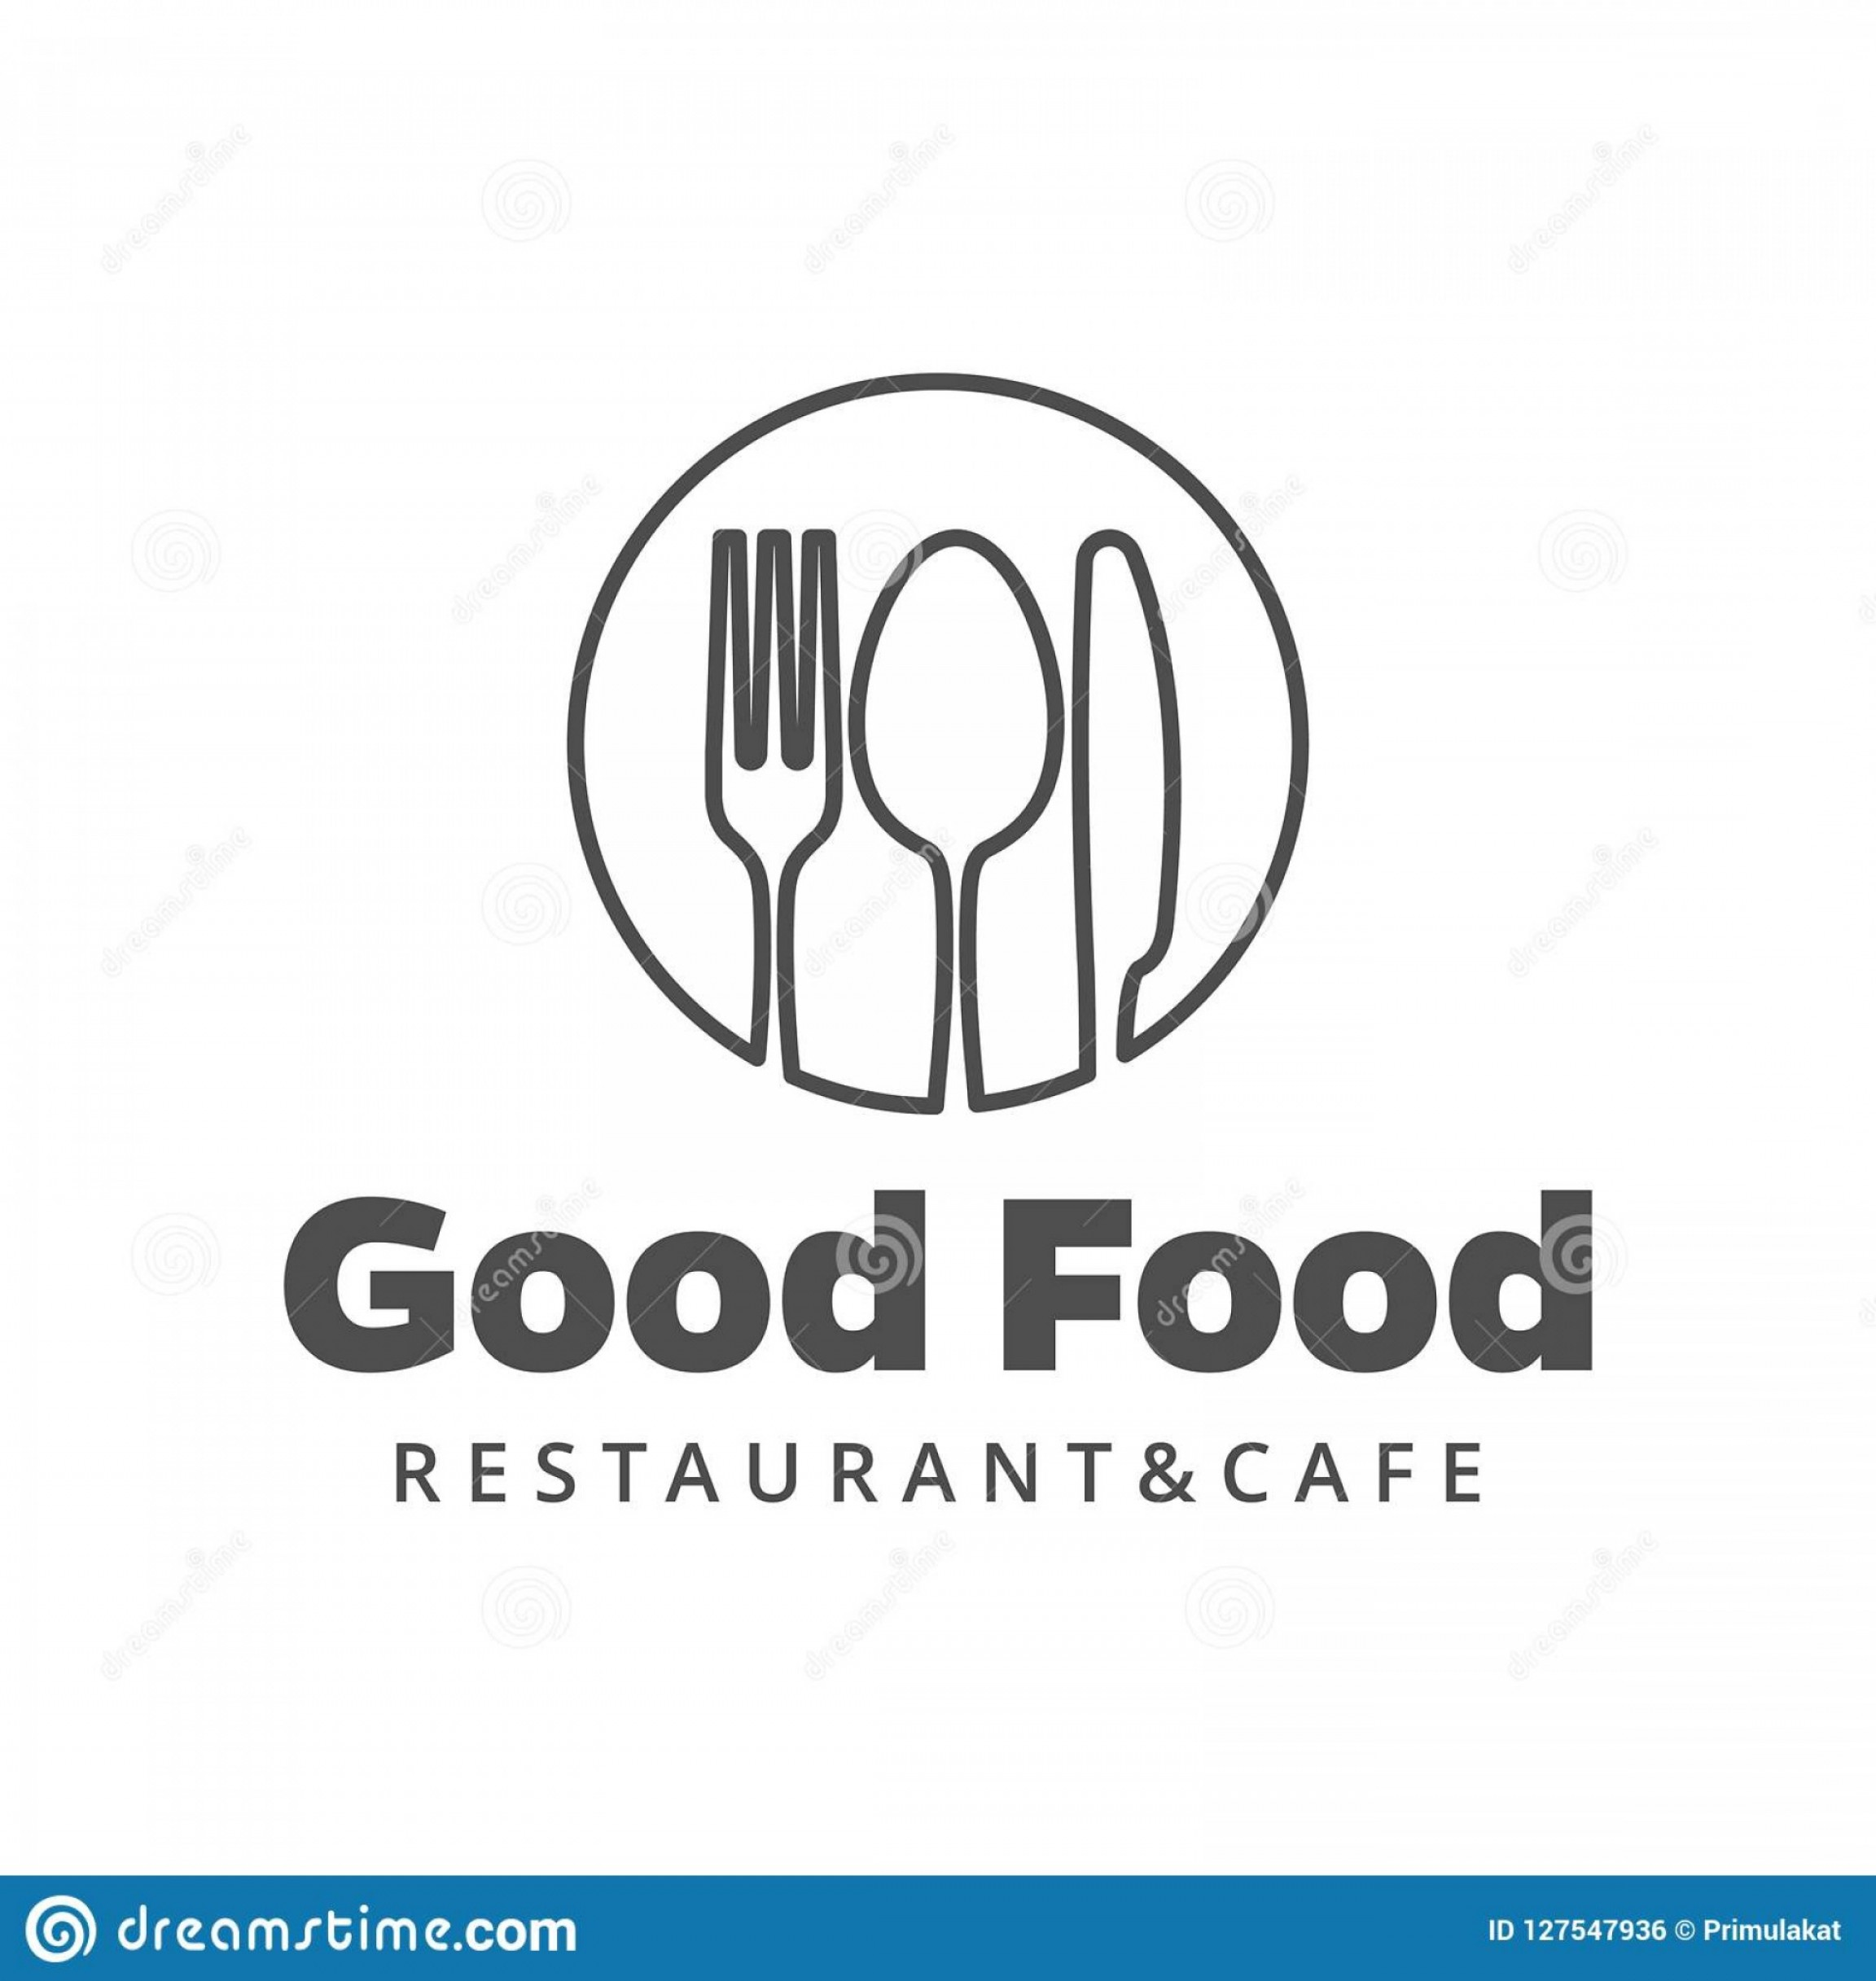 Modern Knife Fork And Spoon Vector Logo: Food Vector Logo Fork Knife Spoon Isolated Sign Cutlery Circle Form Company Restaurant Name Image